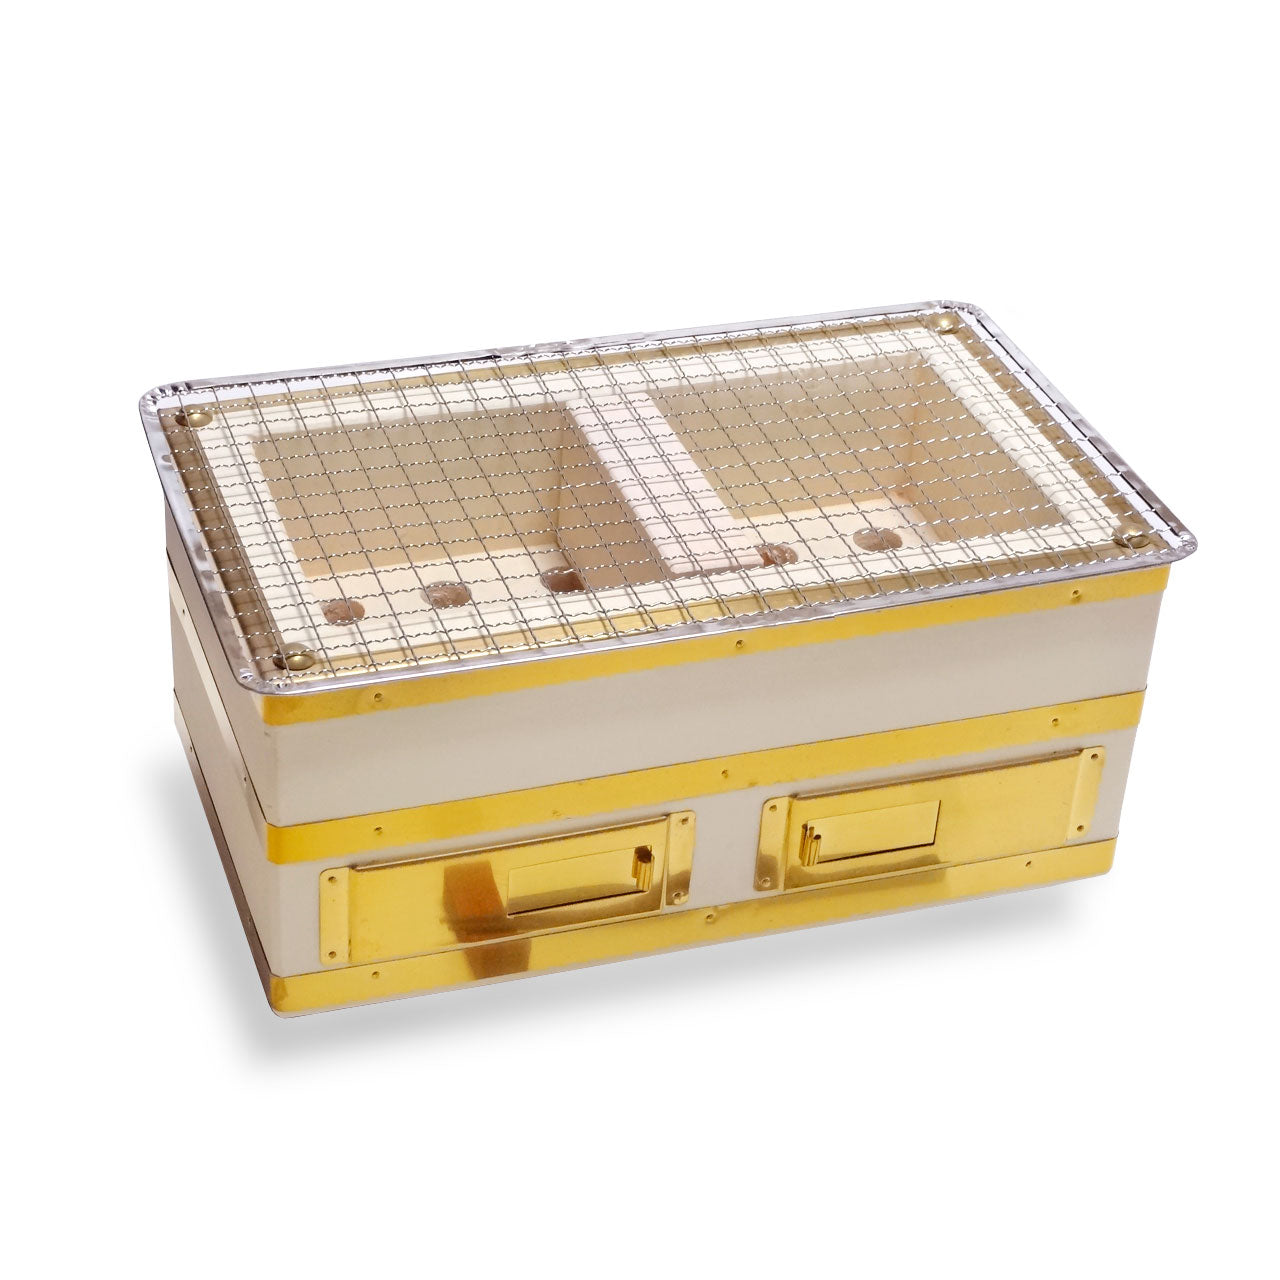 "Charcoal Konro Grill with Brass & Net Small 12"" x 7"" (SKU: 98792)"